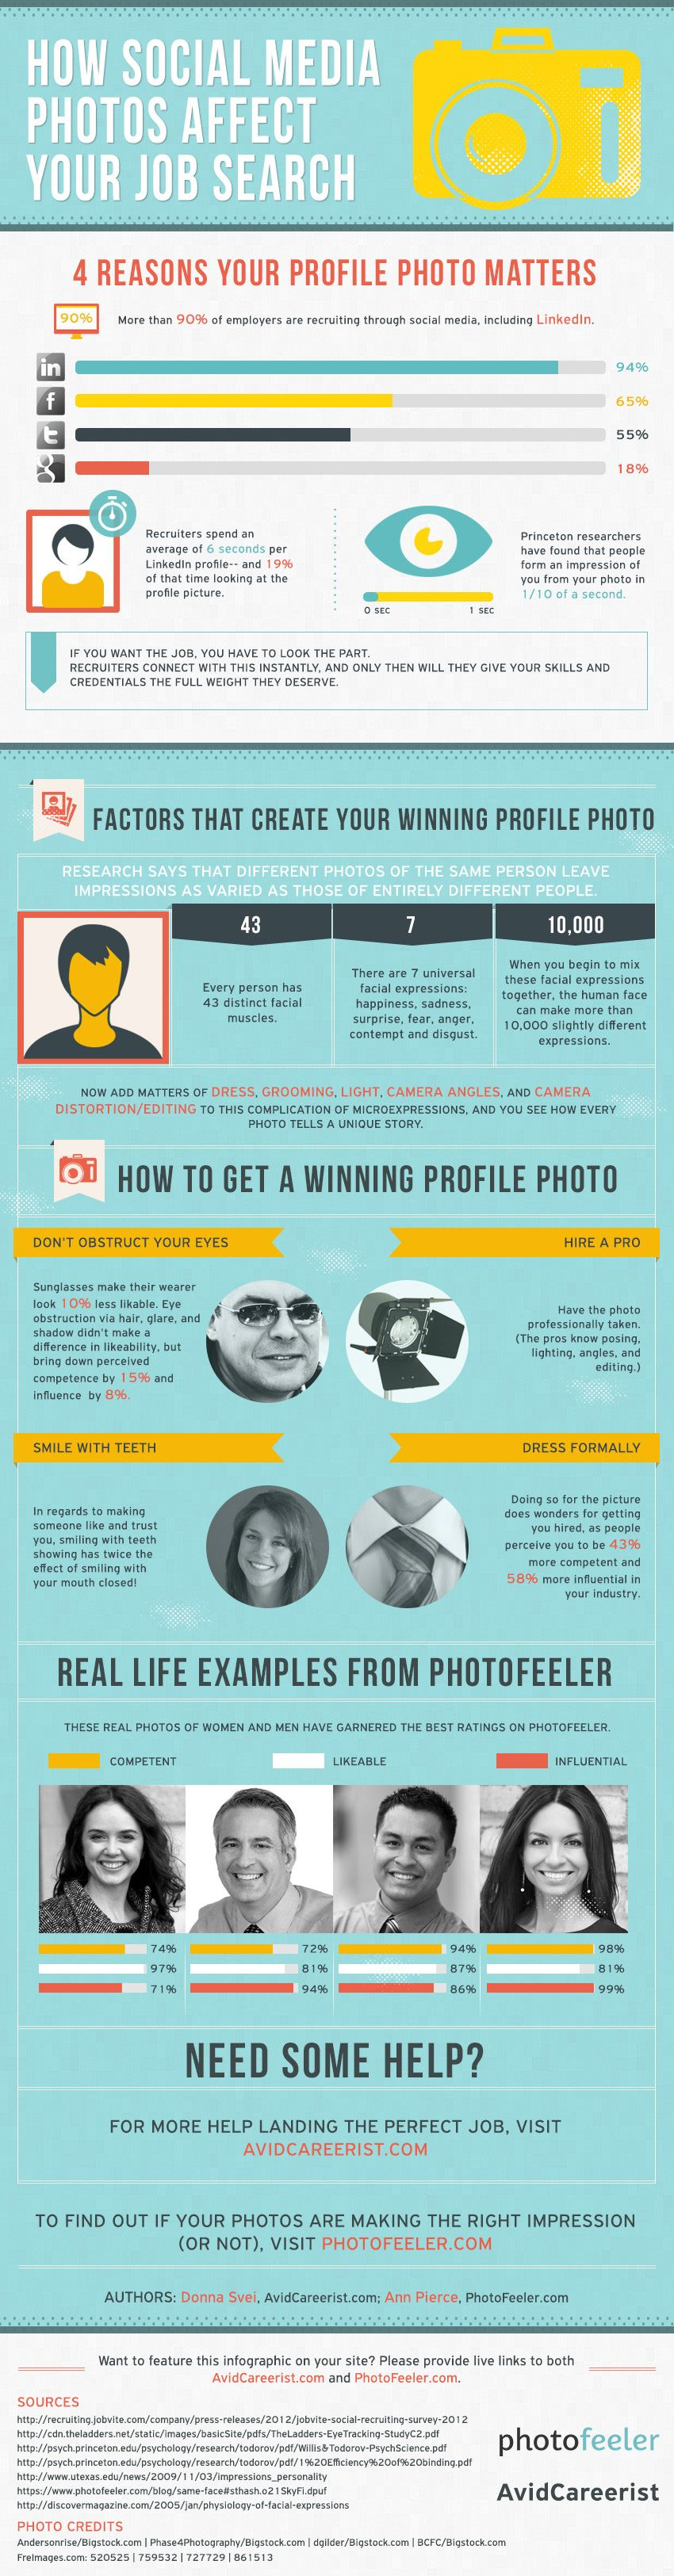 How Social Media Photos Affect Your Job Search #infographic